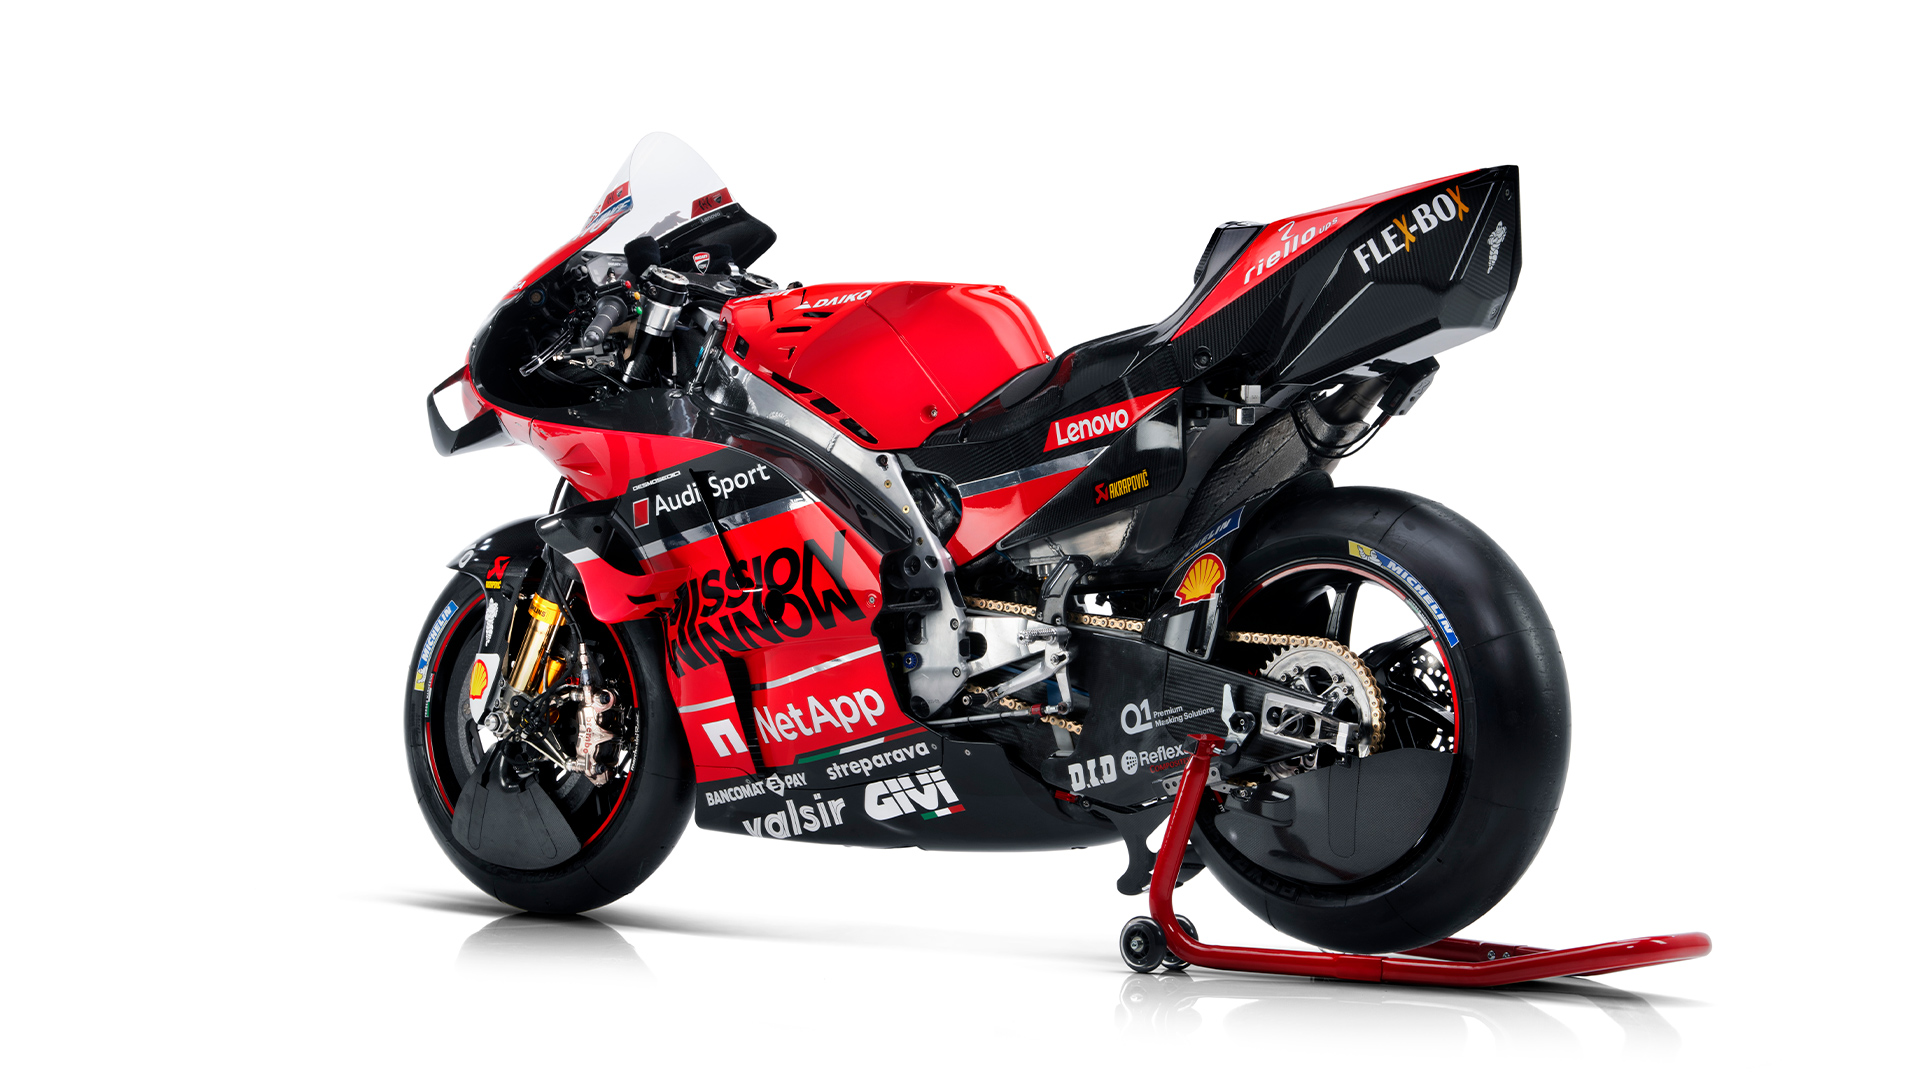 Ducati Team Motogp Bike